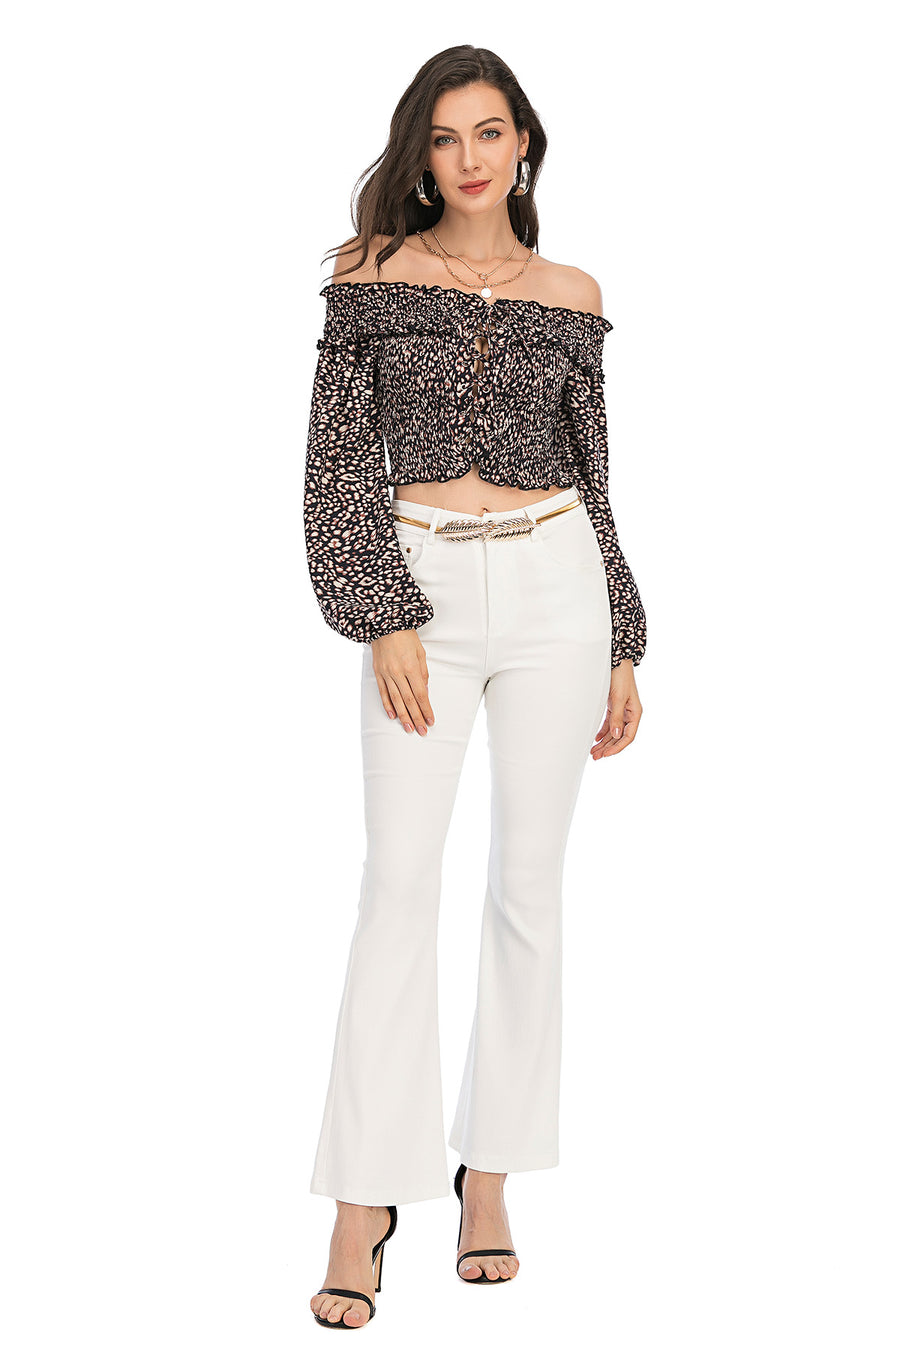 Mantra Pakistan Cheetah Print Lace Up Top | Western Wear